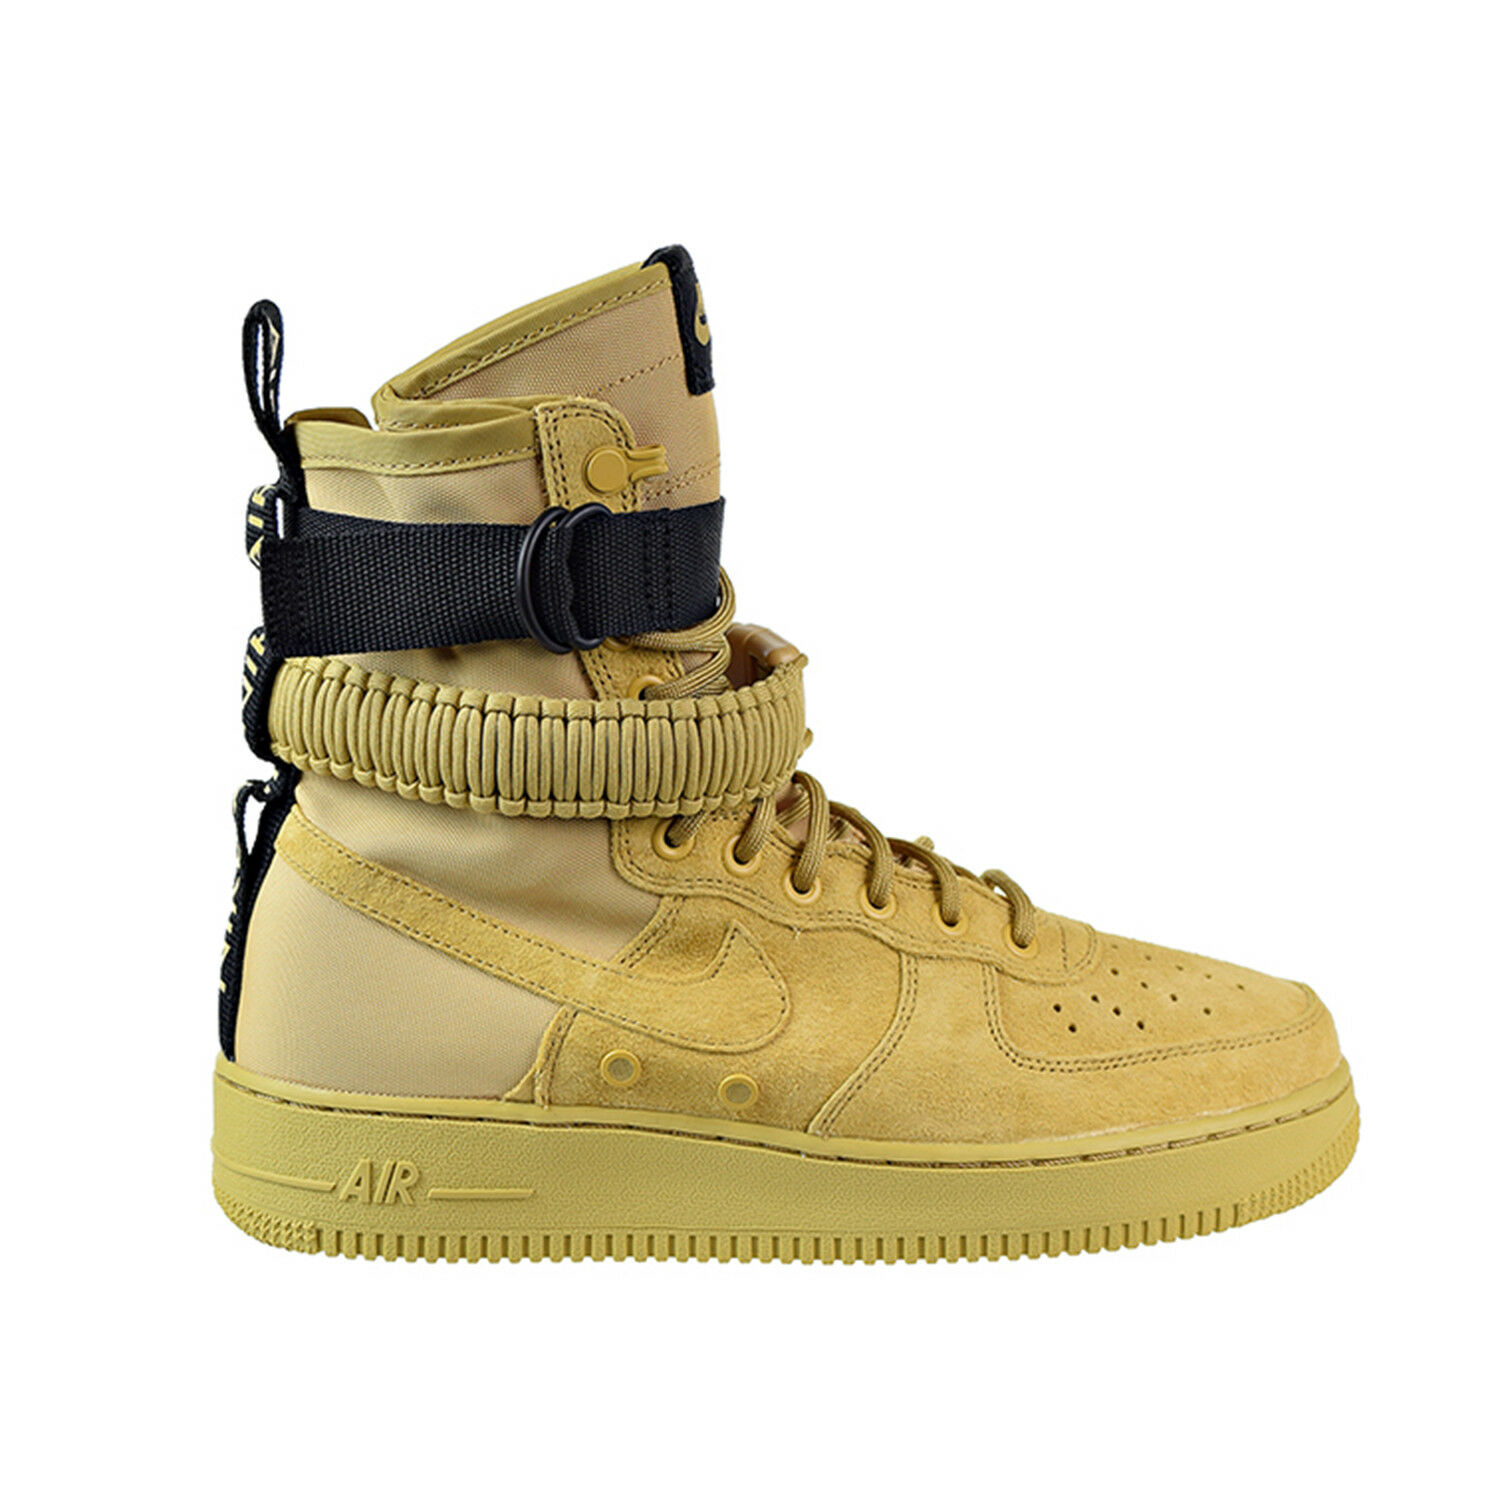 Nike SF AF1 Men's Boots Club gold Club gold Black 864024-700